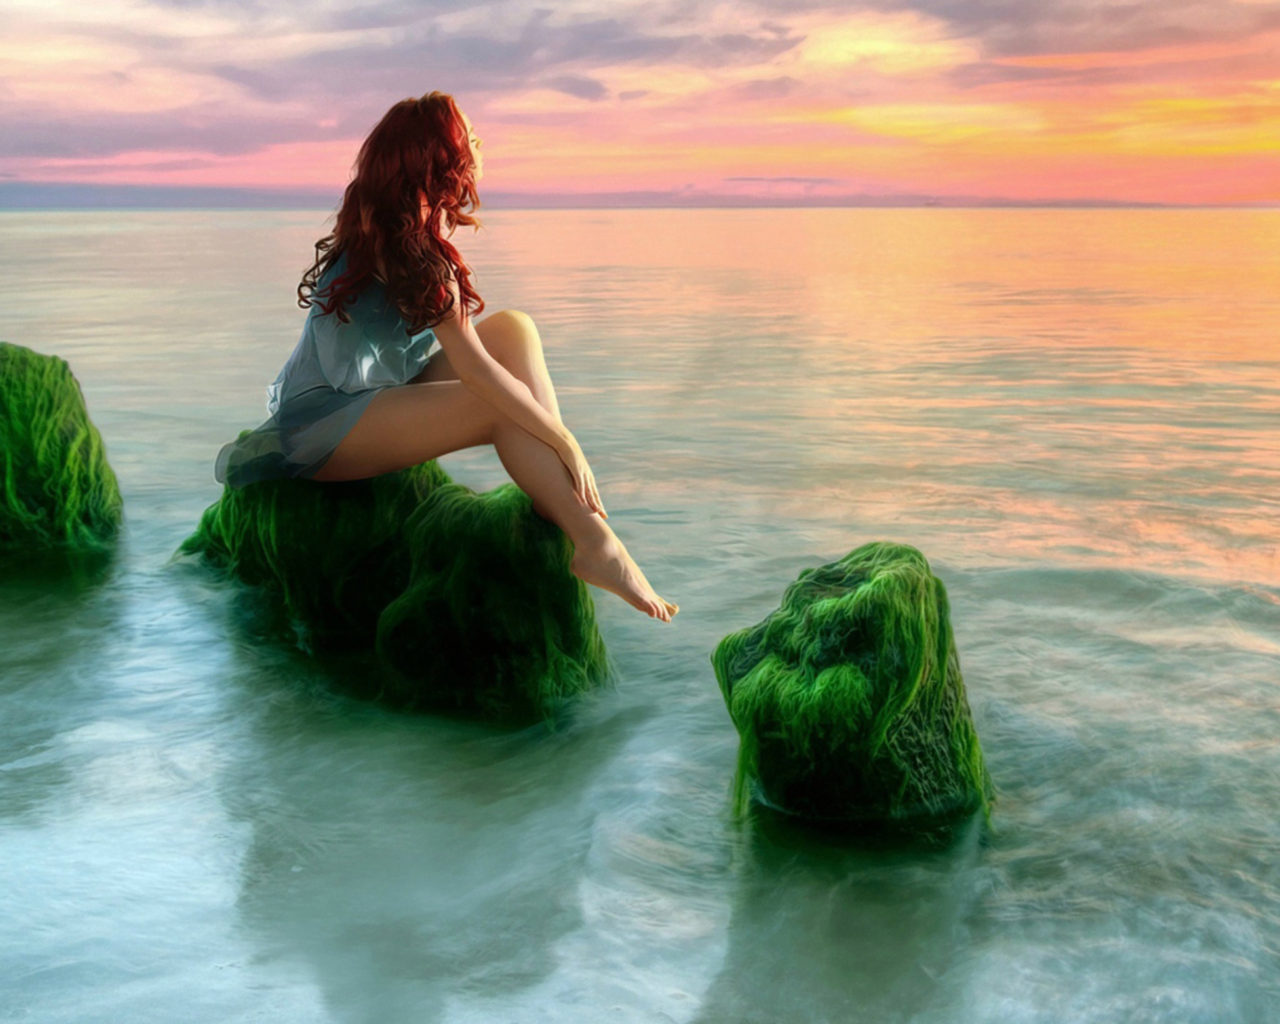 Barefoot Girl Wallpaper Beauty Girl Sea Sunset Relax Desktop Hd Wallpaper